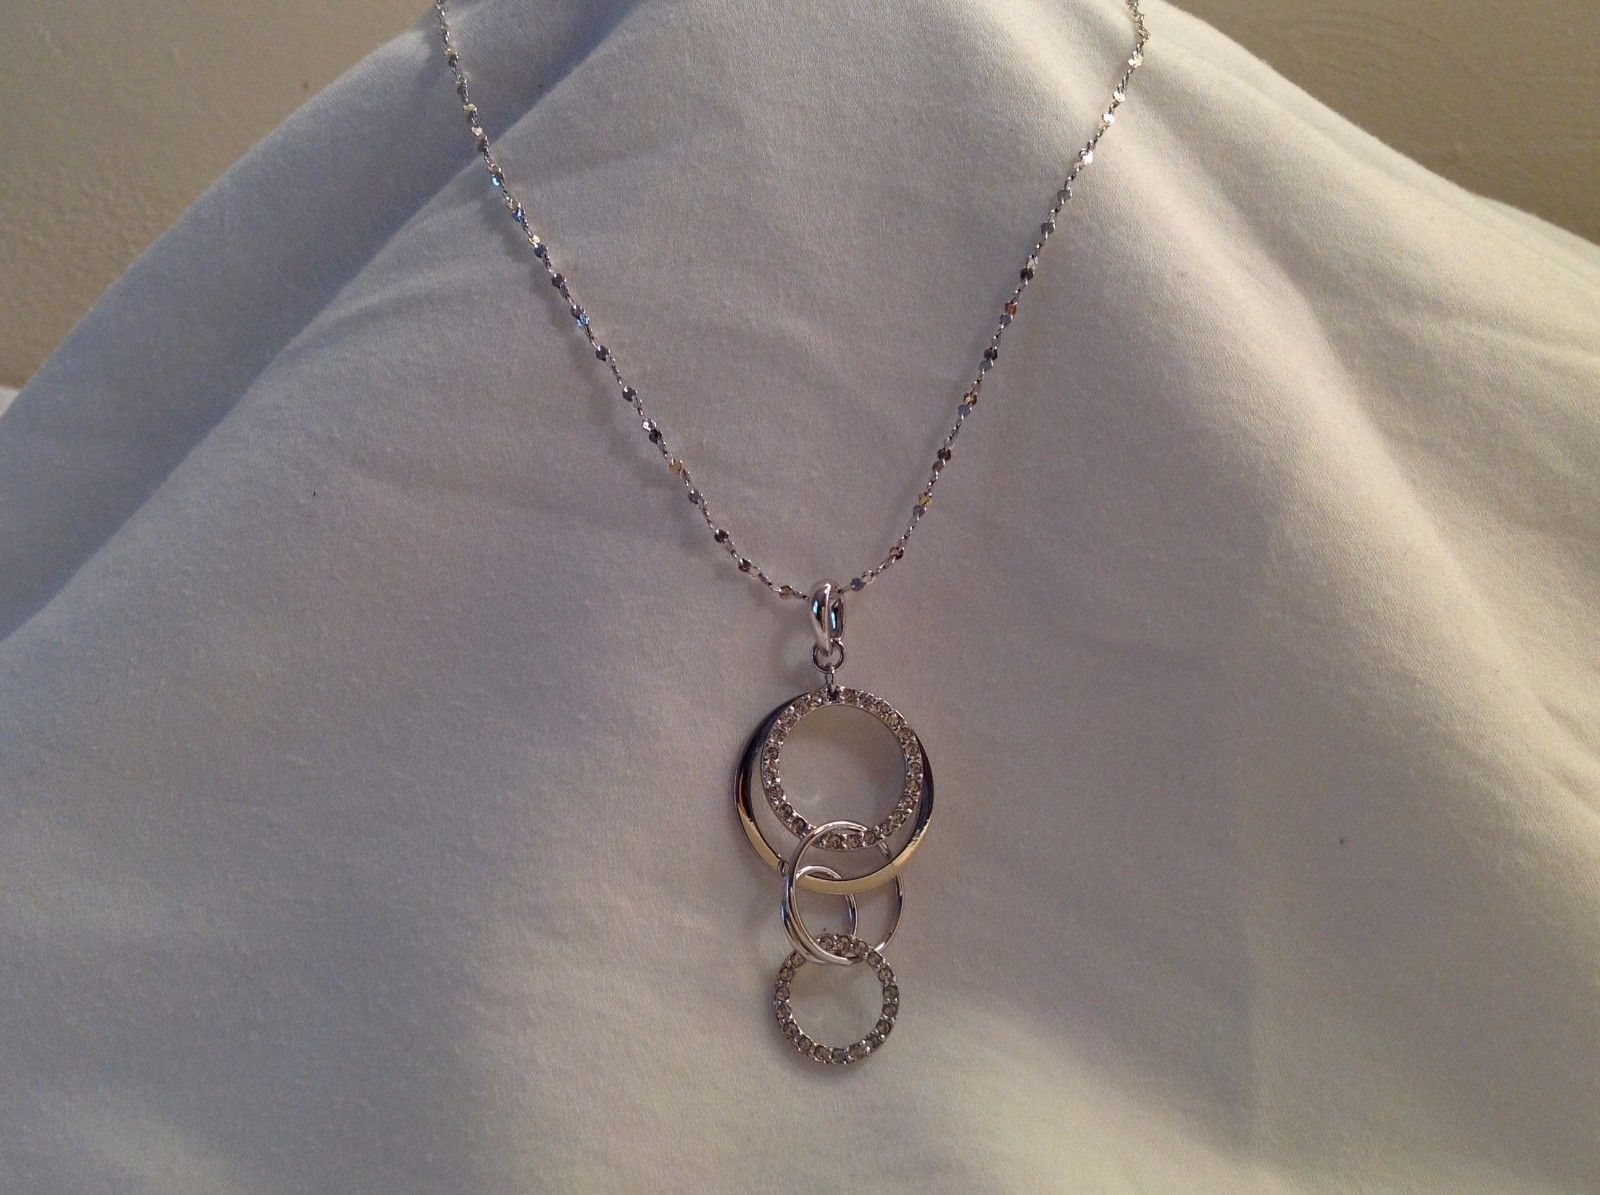 New Annaleece Necklace Connections Rhodium Silver Clear with Swarovski Elements